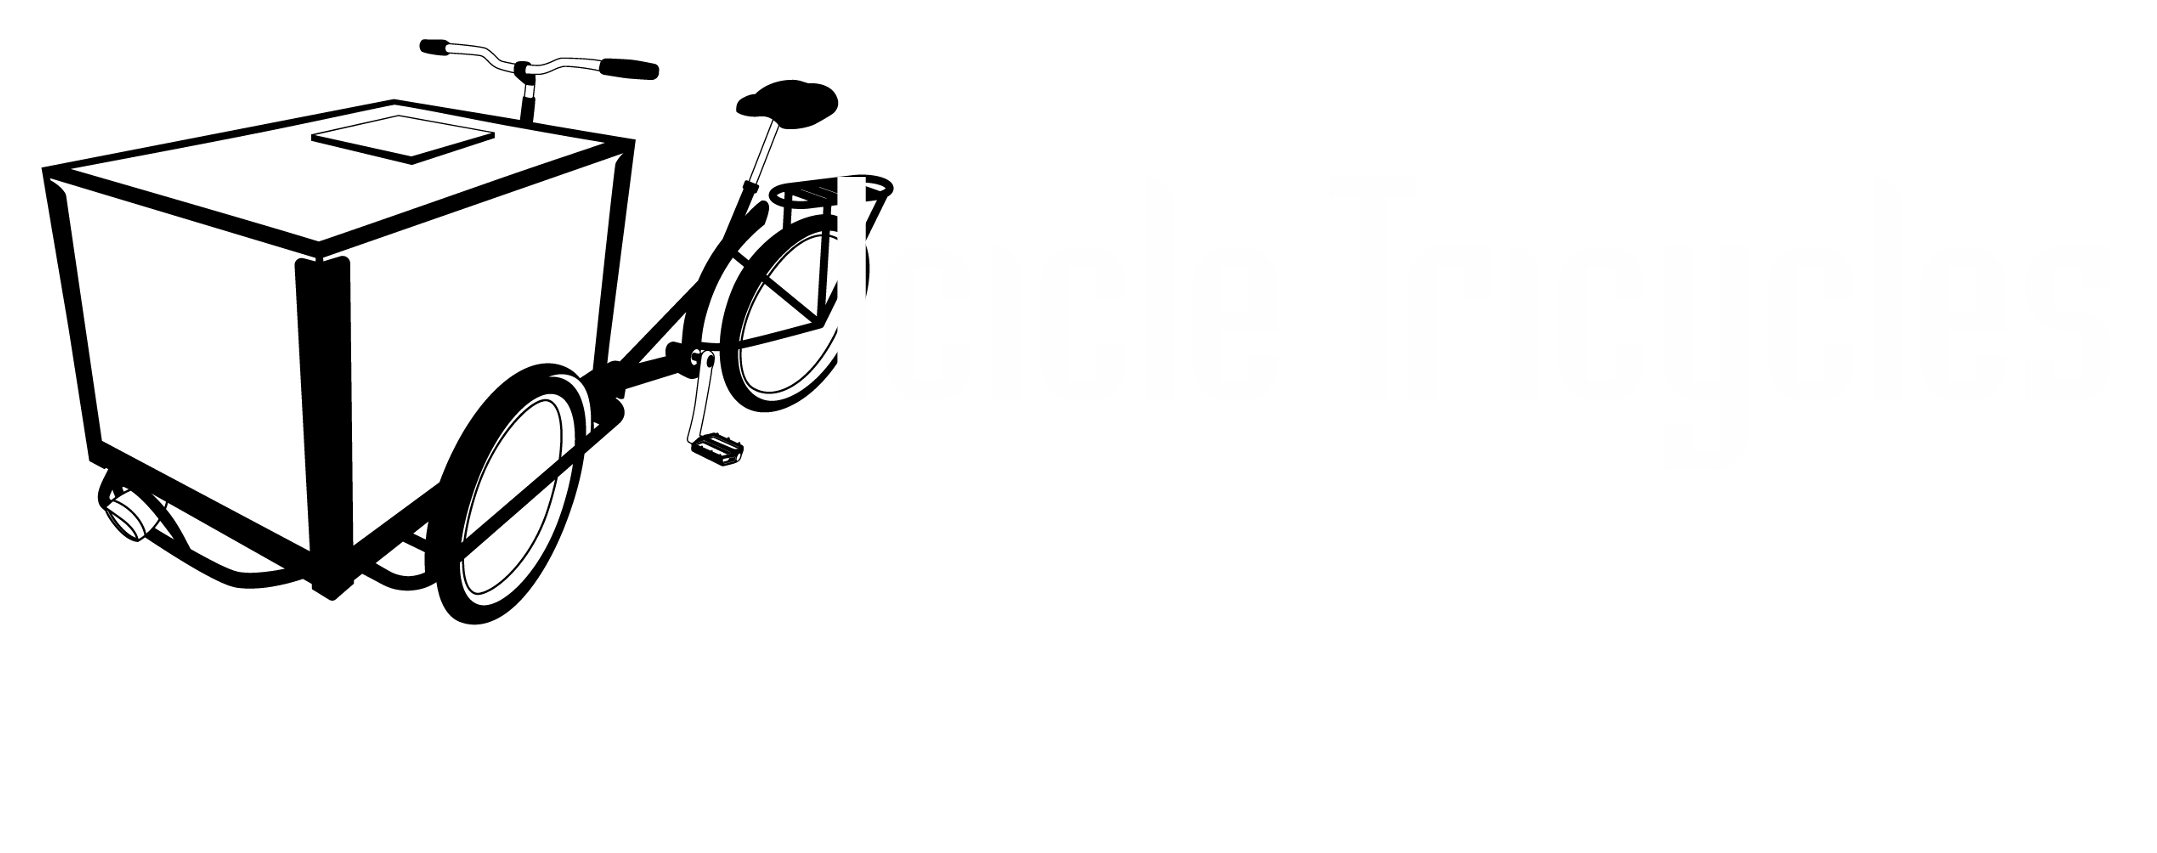 Icicle Tricycles Canada